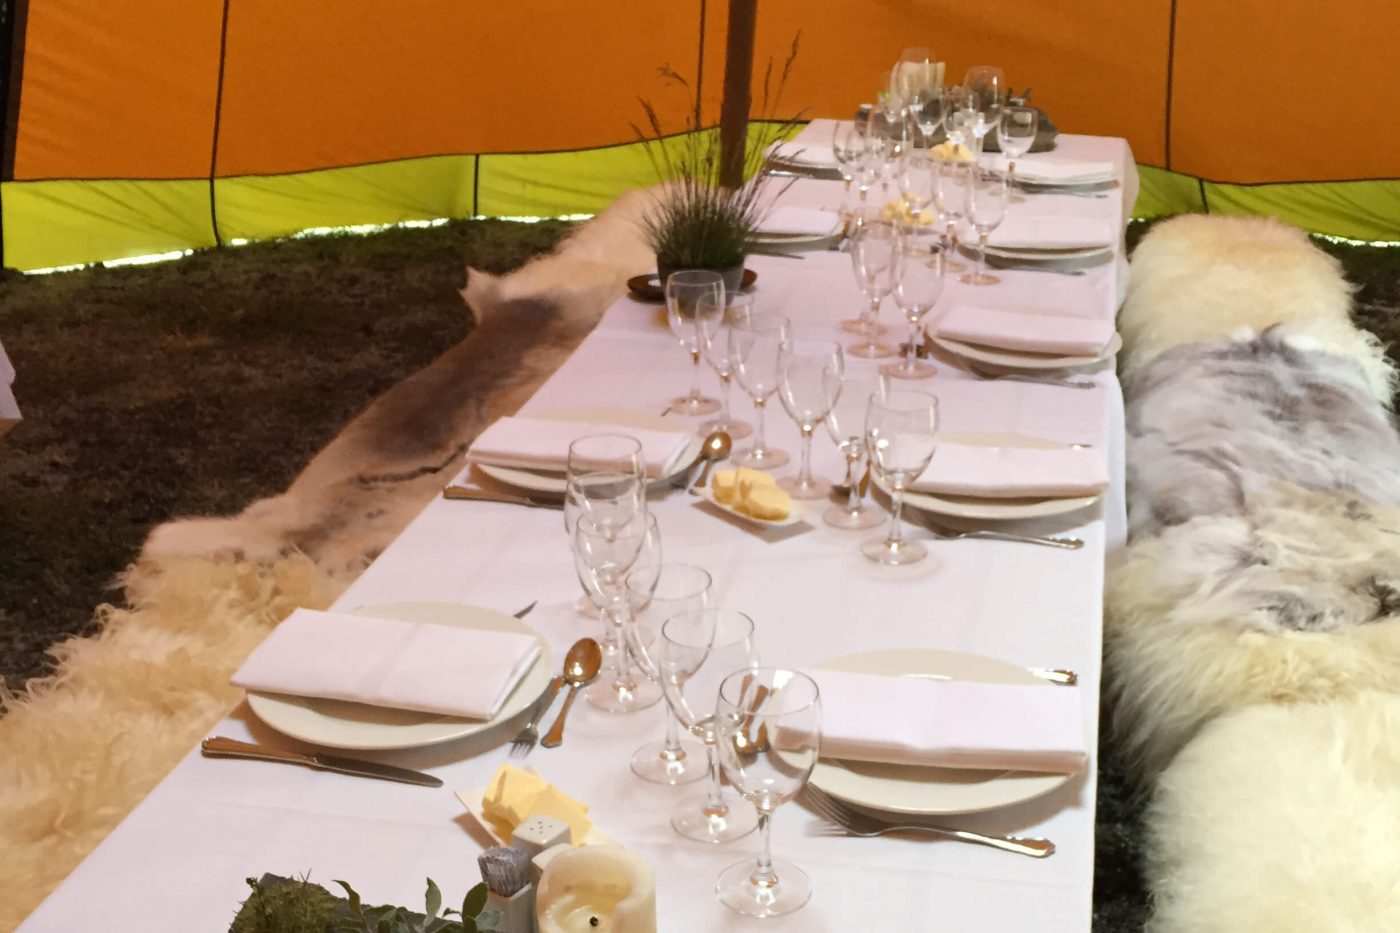 Set table ready for dinner a comfortable tent. Photo by Arctic Nomad